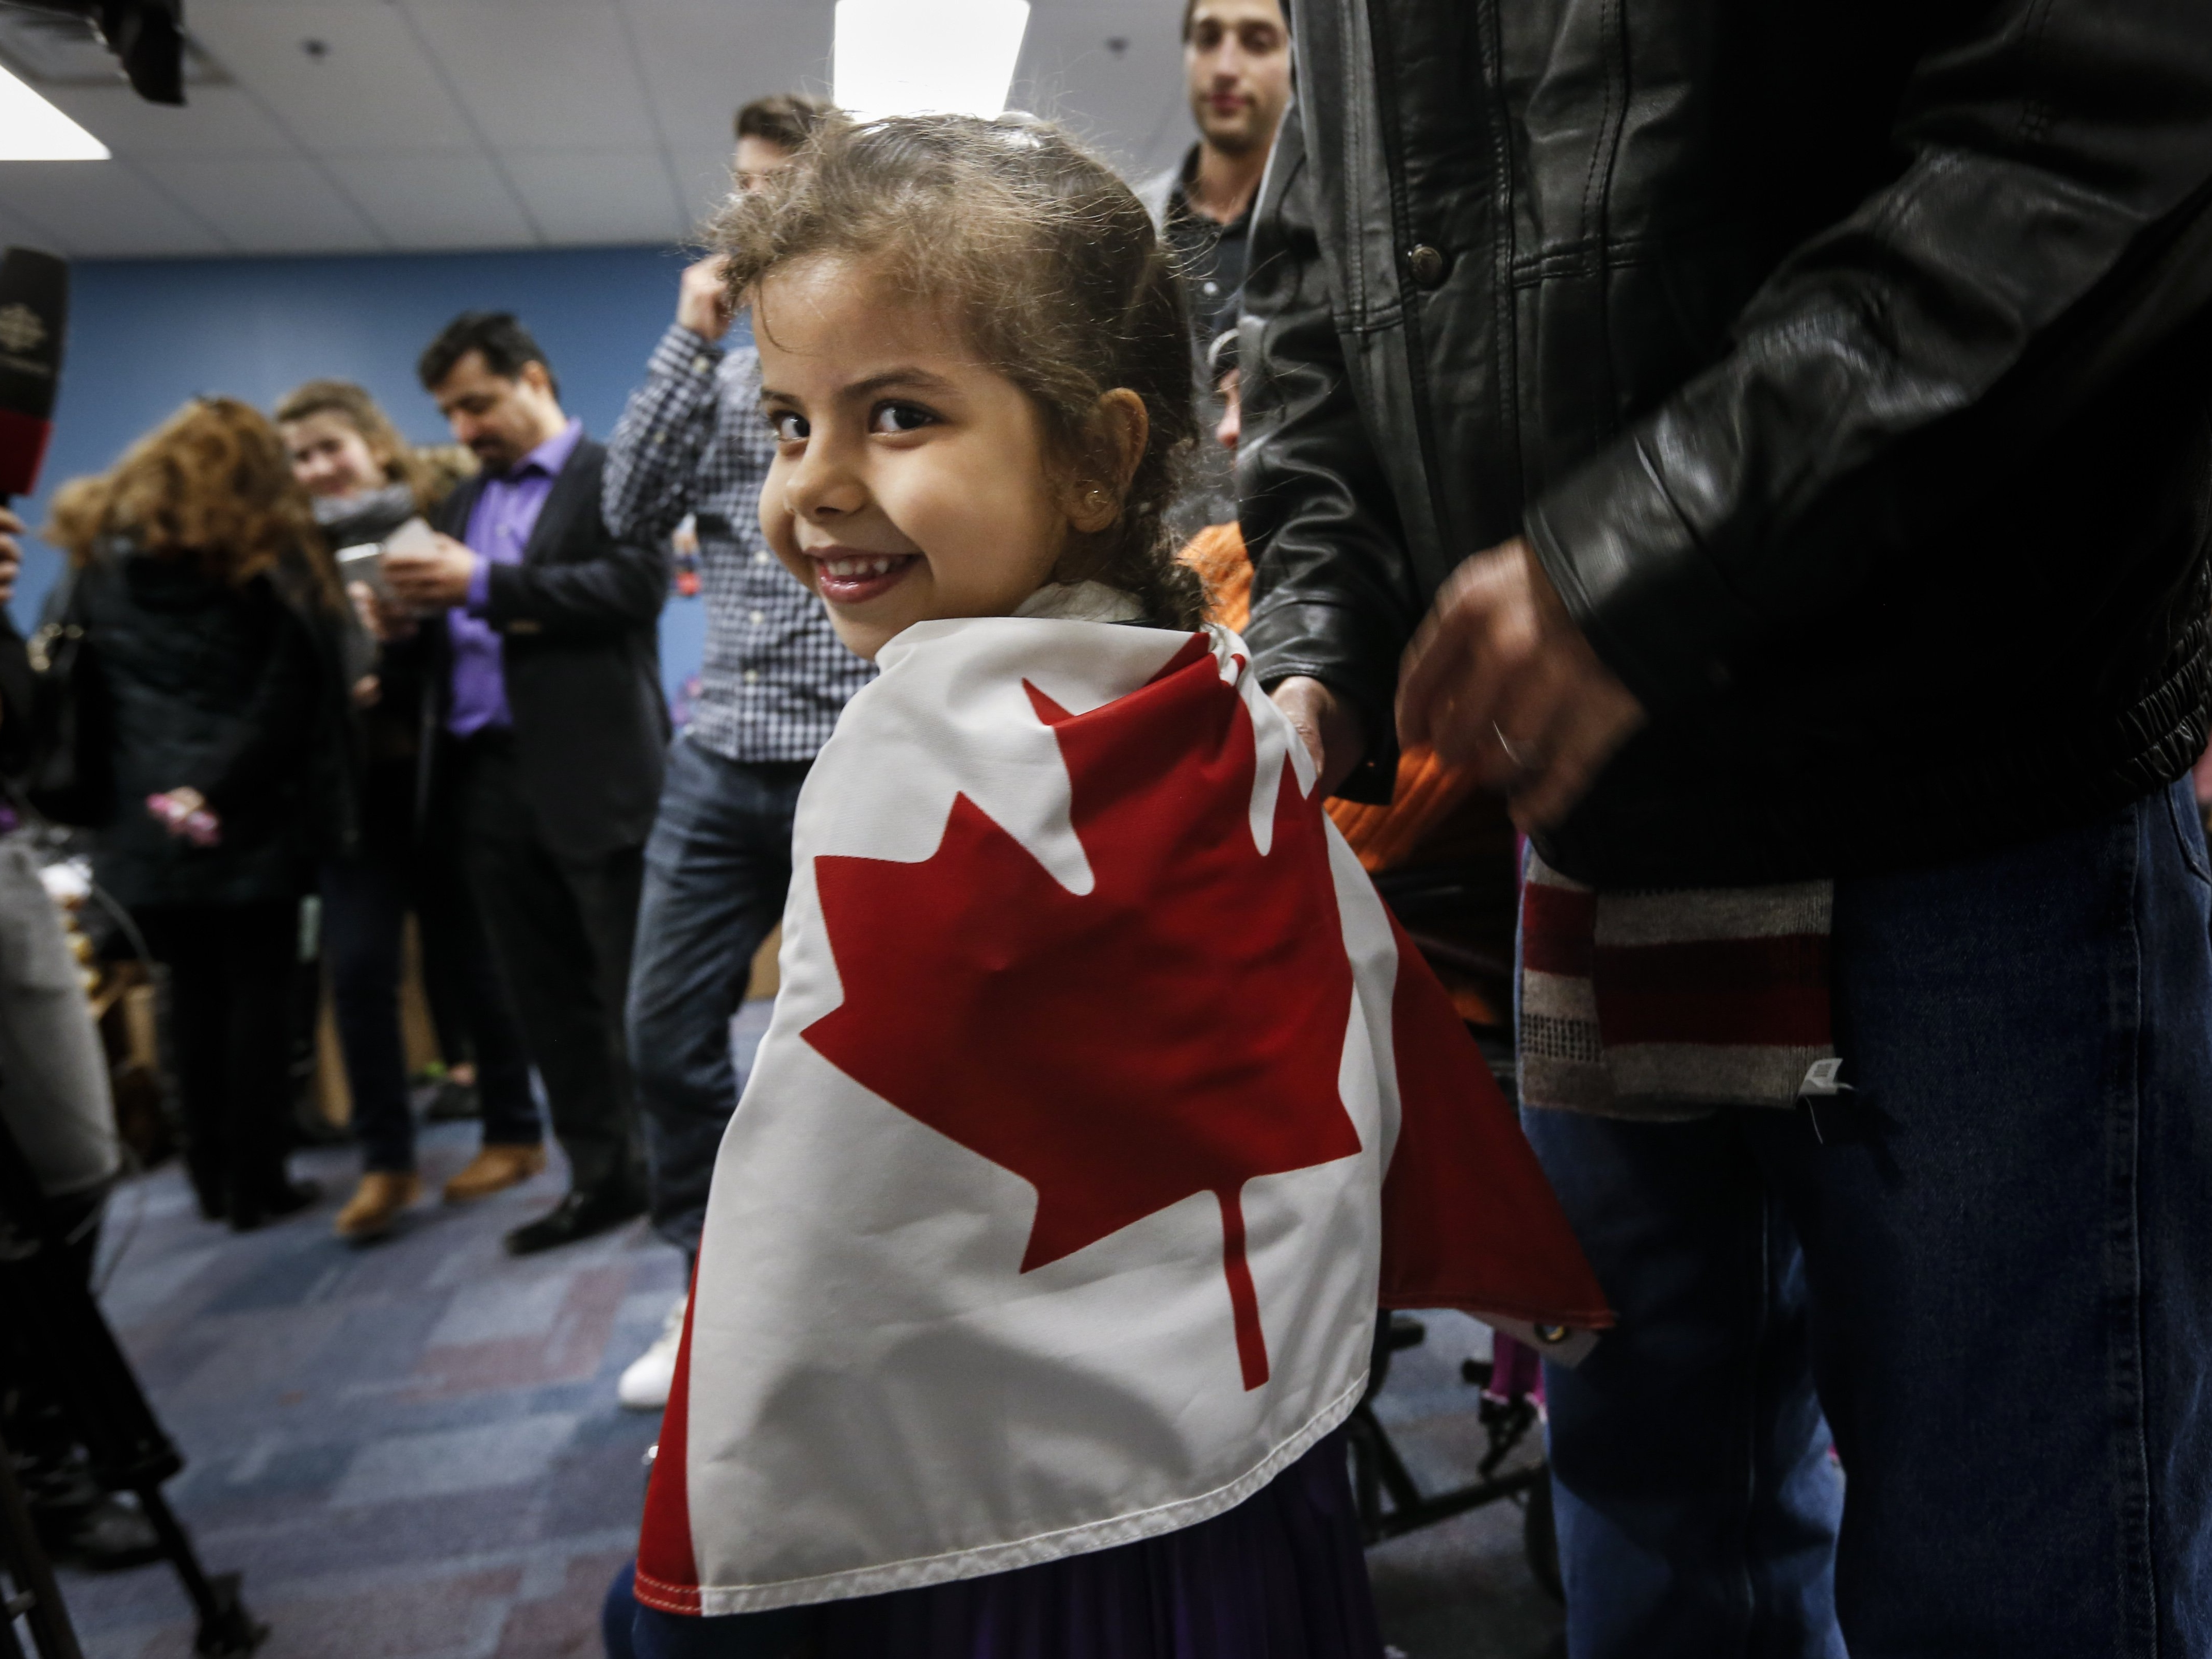 Canada Says It Has Met Its Goal Of Resettling 25,000 Syrian Refugees